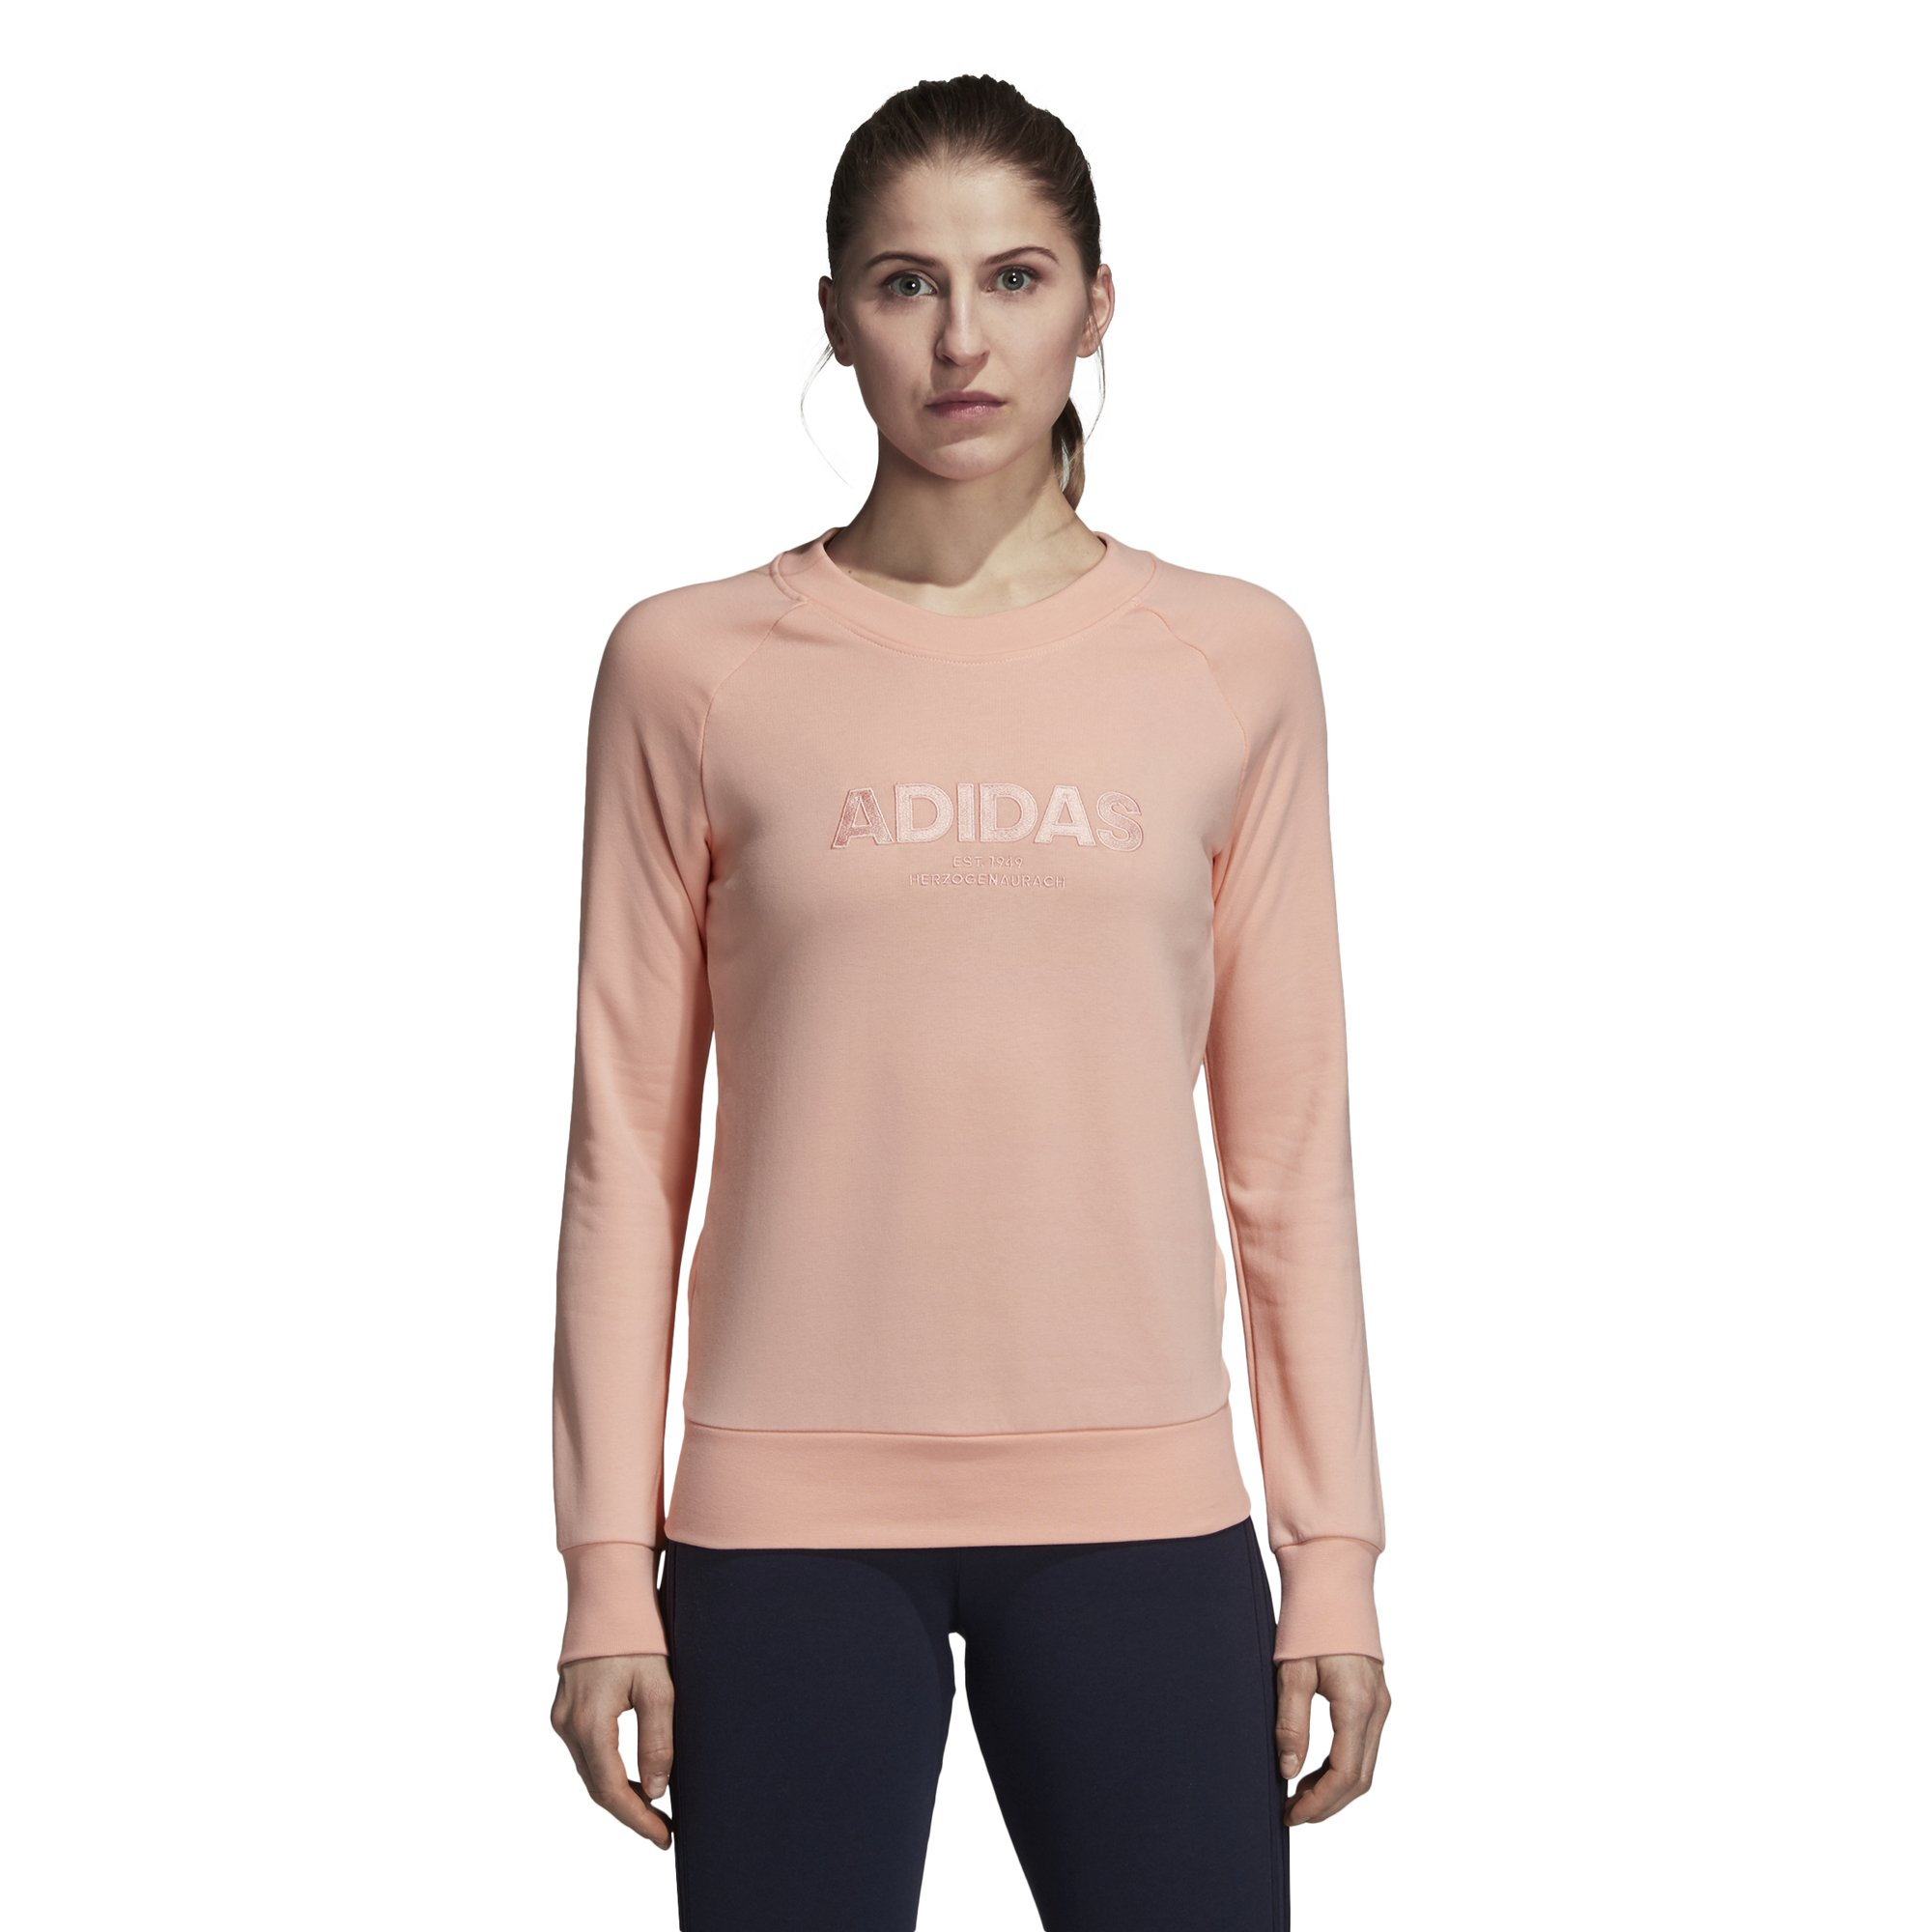 adidas Women's Essentials Allcap Sports Sweater, Variety (Medium, Haze Coral) by adidas